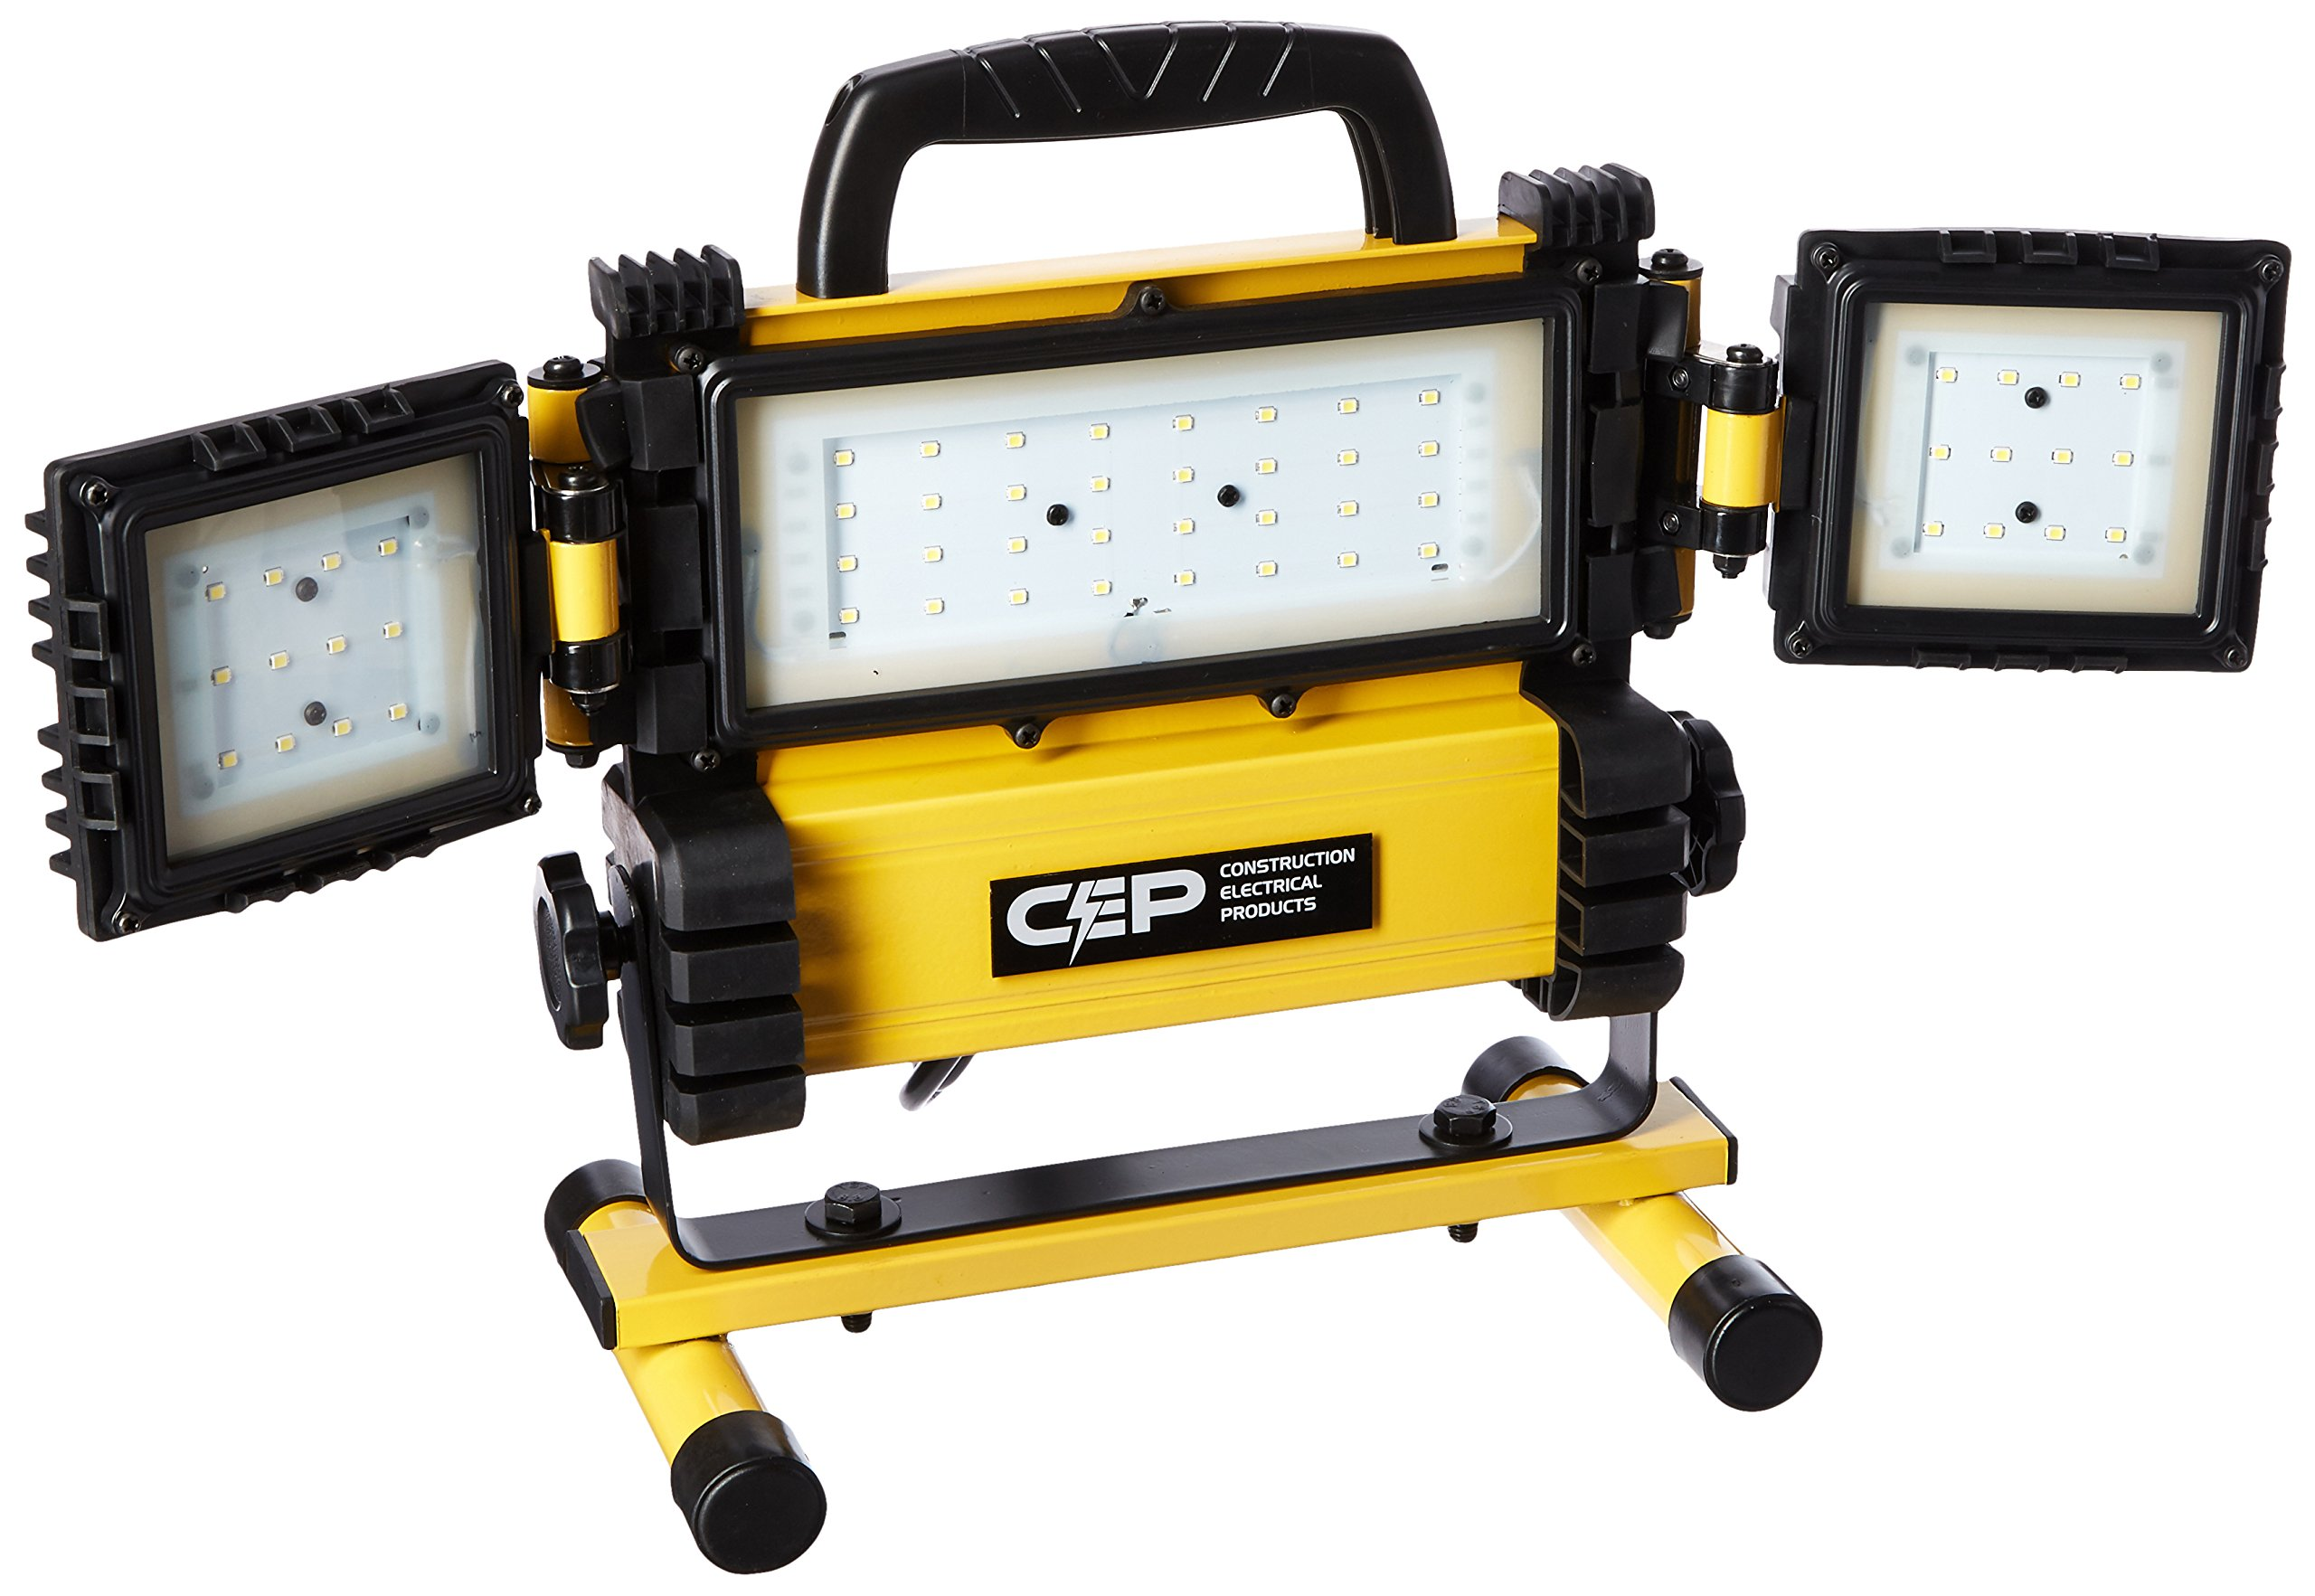 CEP Construction Electrical Products 5220 LED Portable Work Light by CEP Construction Electrical Products (Image #1)